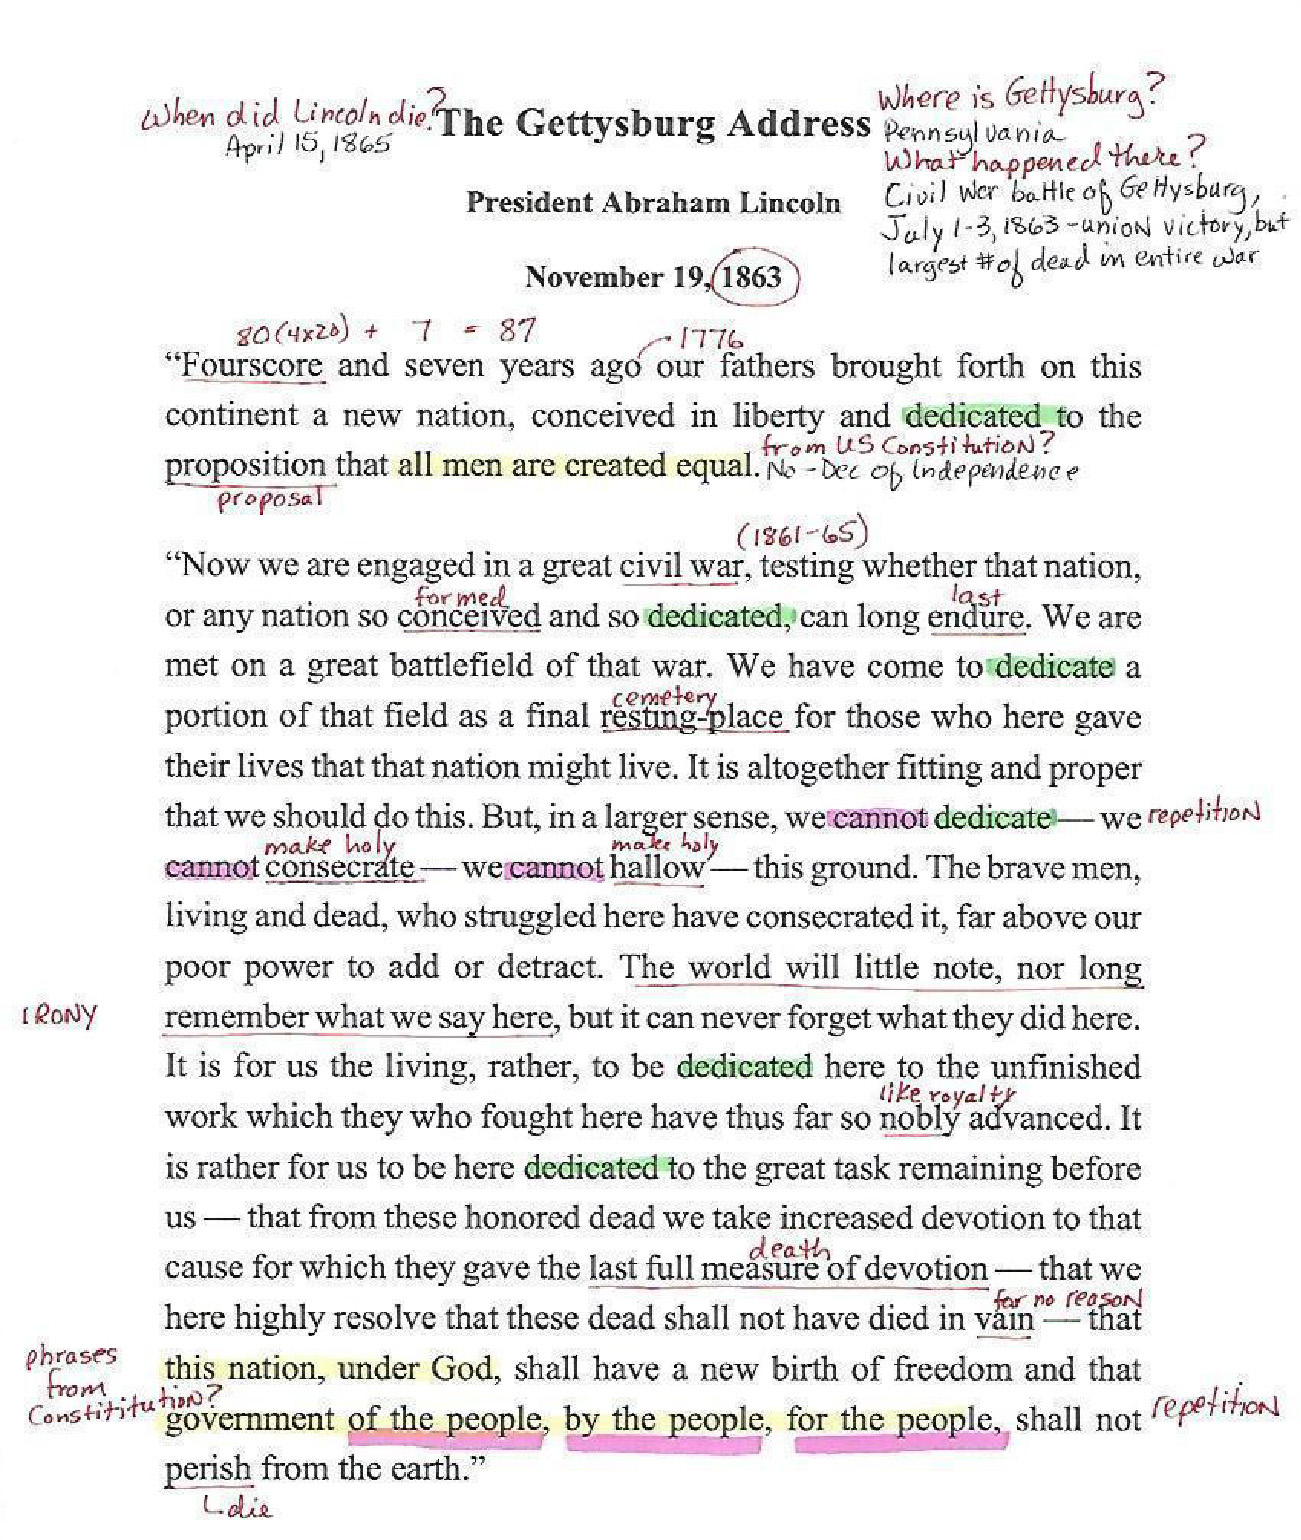 A well annotated version of the Gettysburg Address by President Abraham Lincoln, November 19, 1863 by a student.